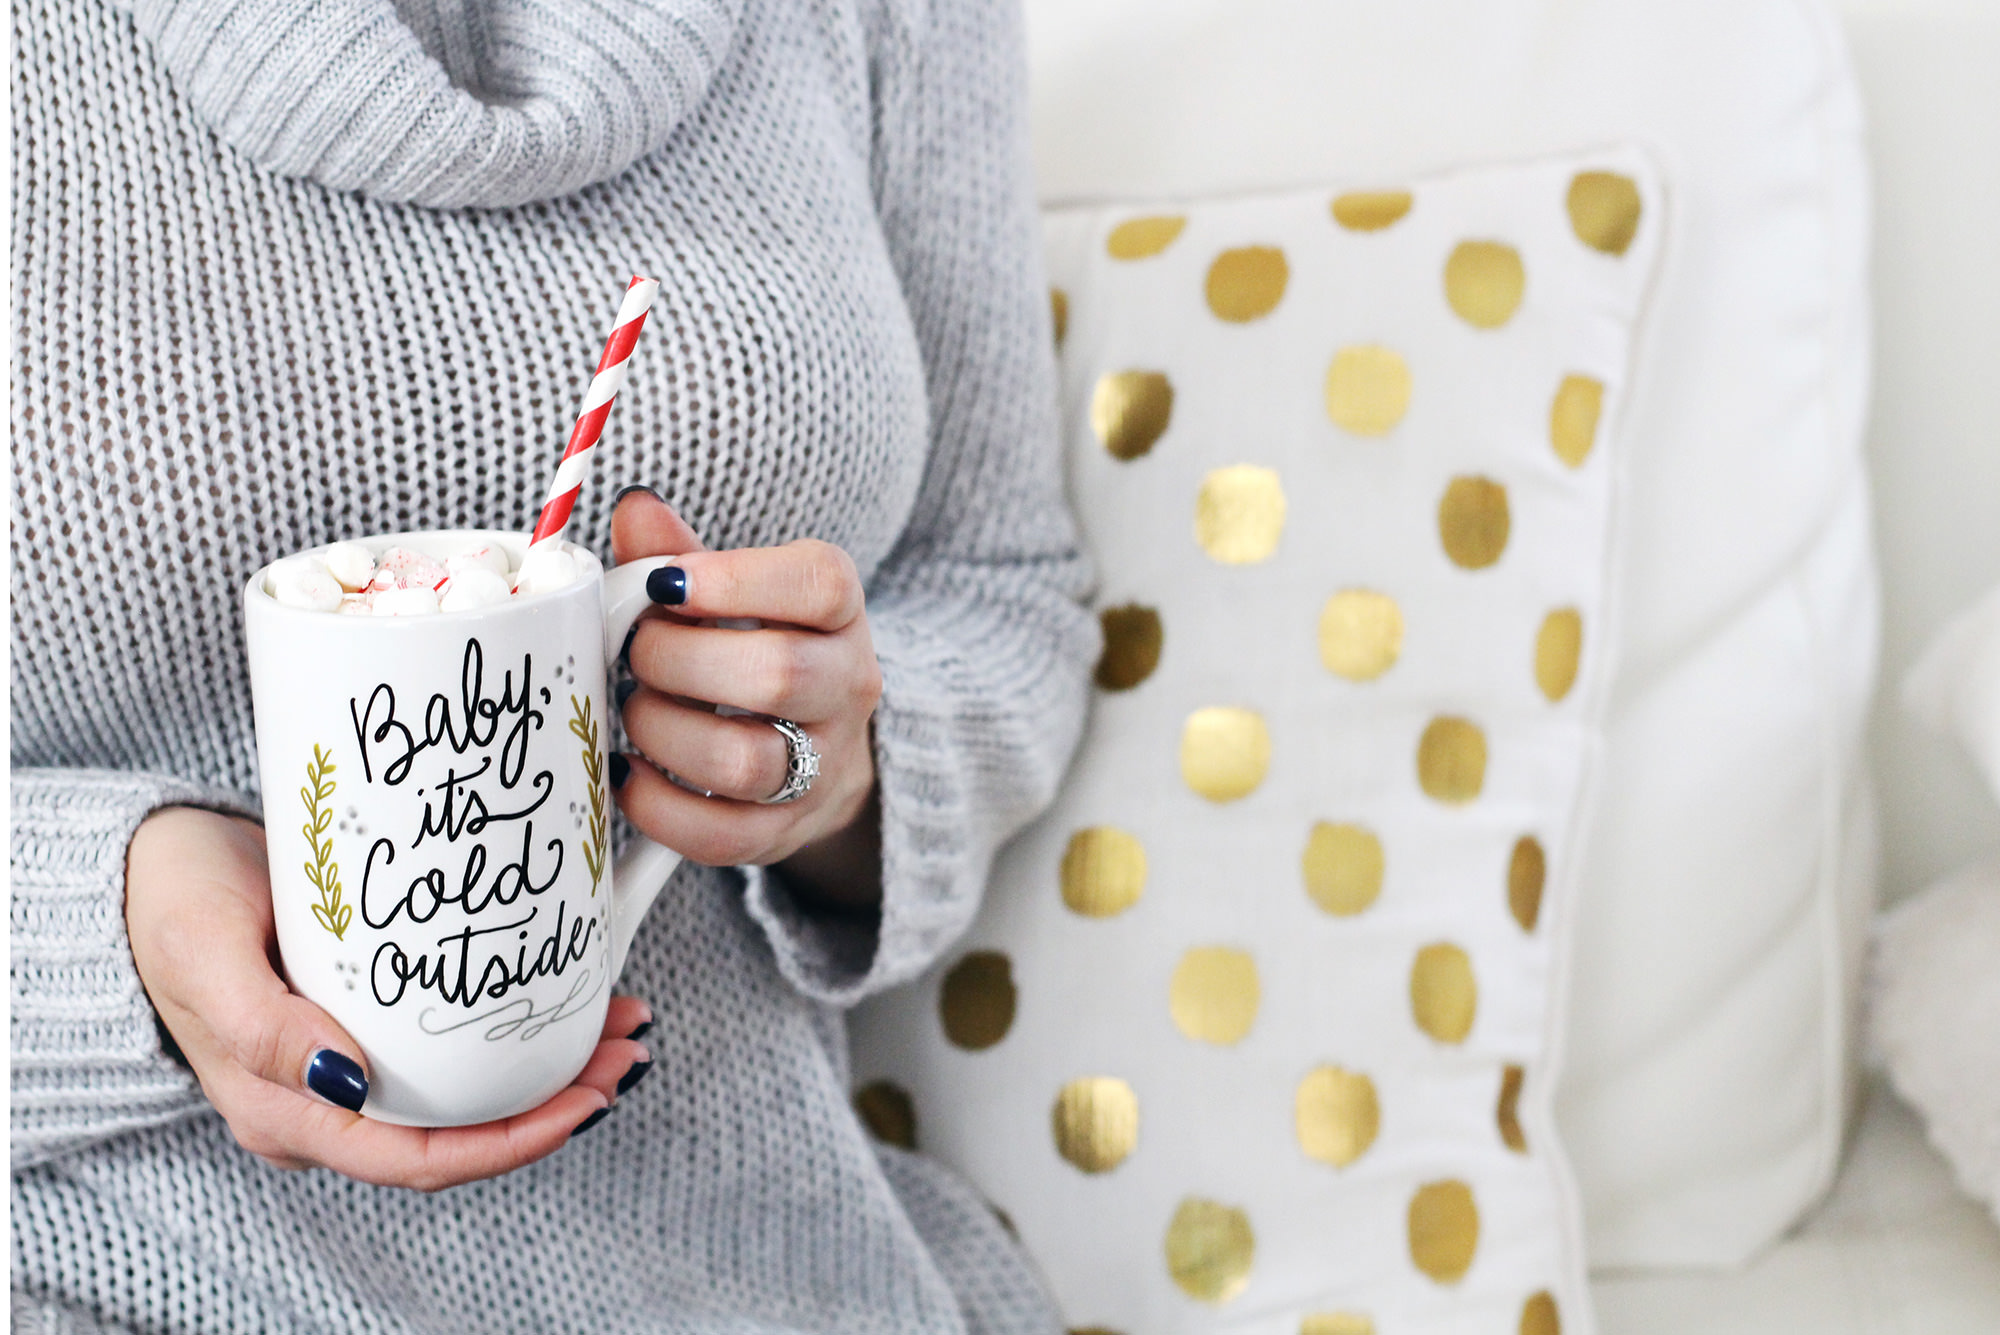 Baby it's cold outside hand lettered mug by Valerie McKeehan